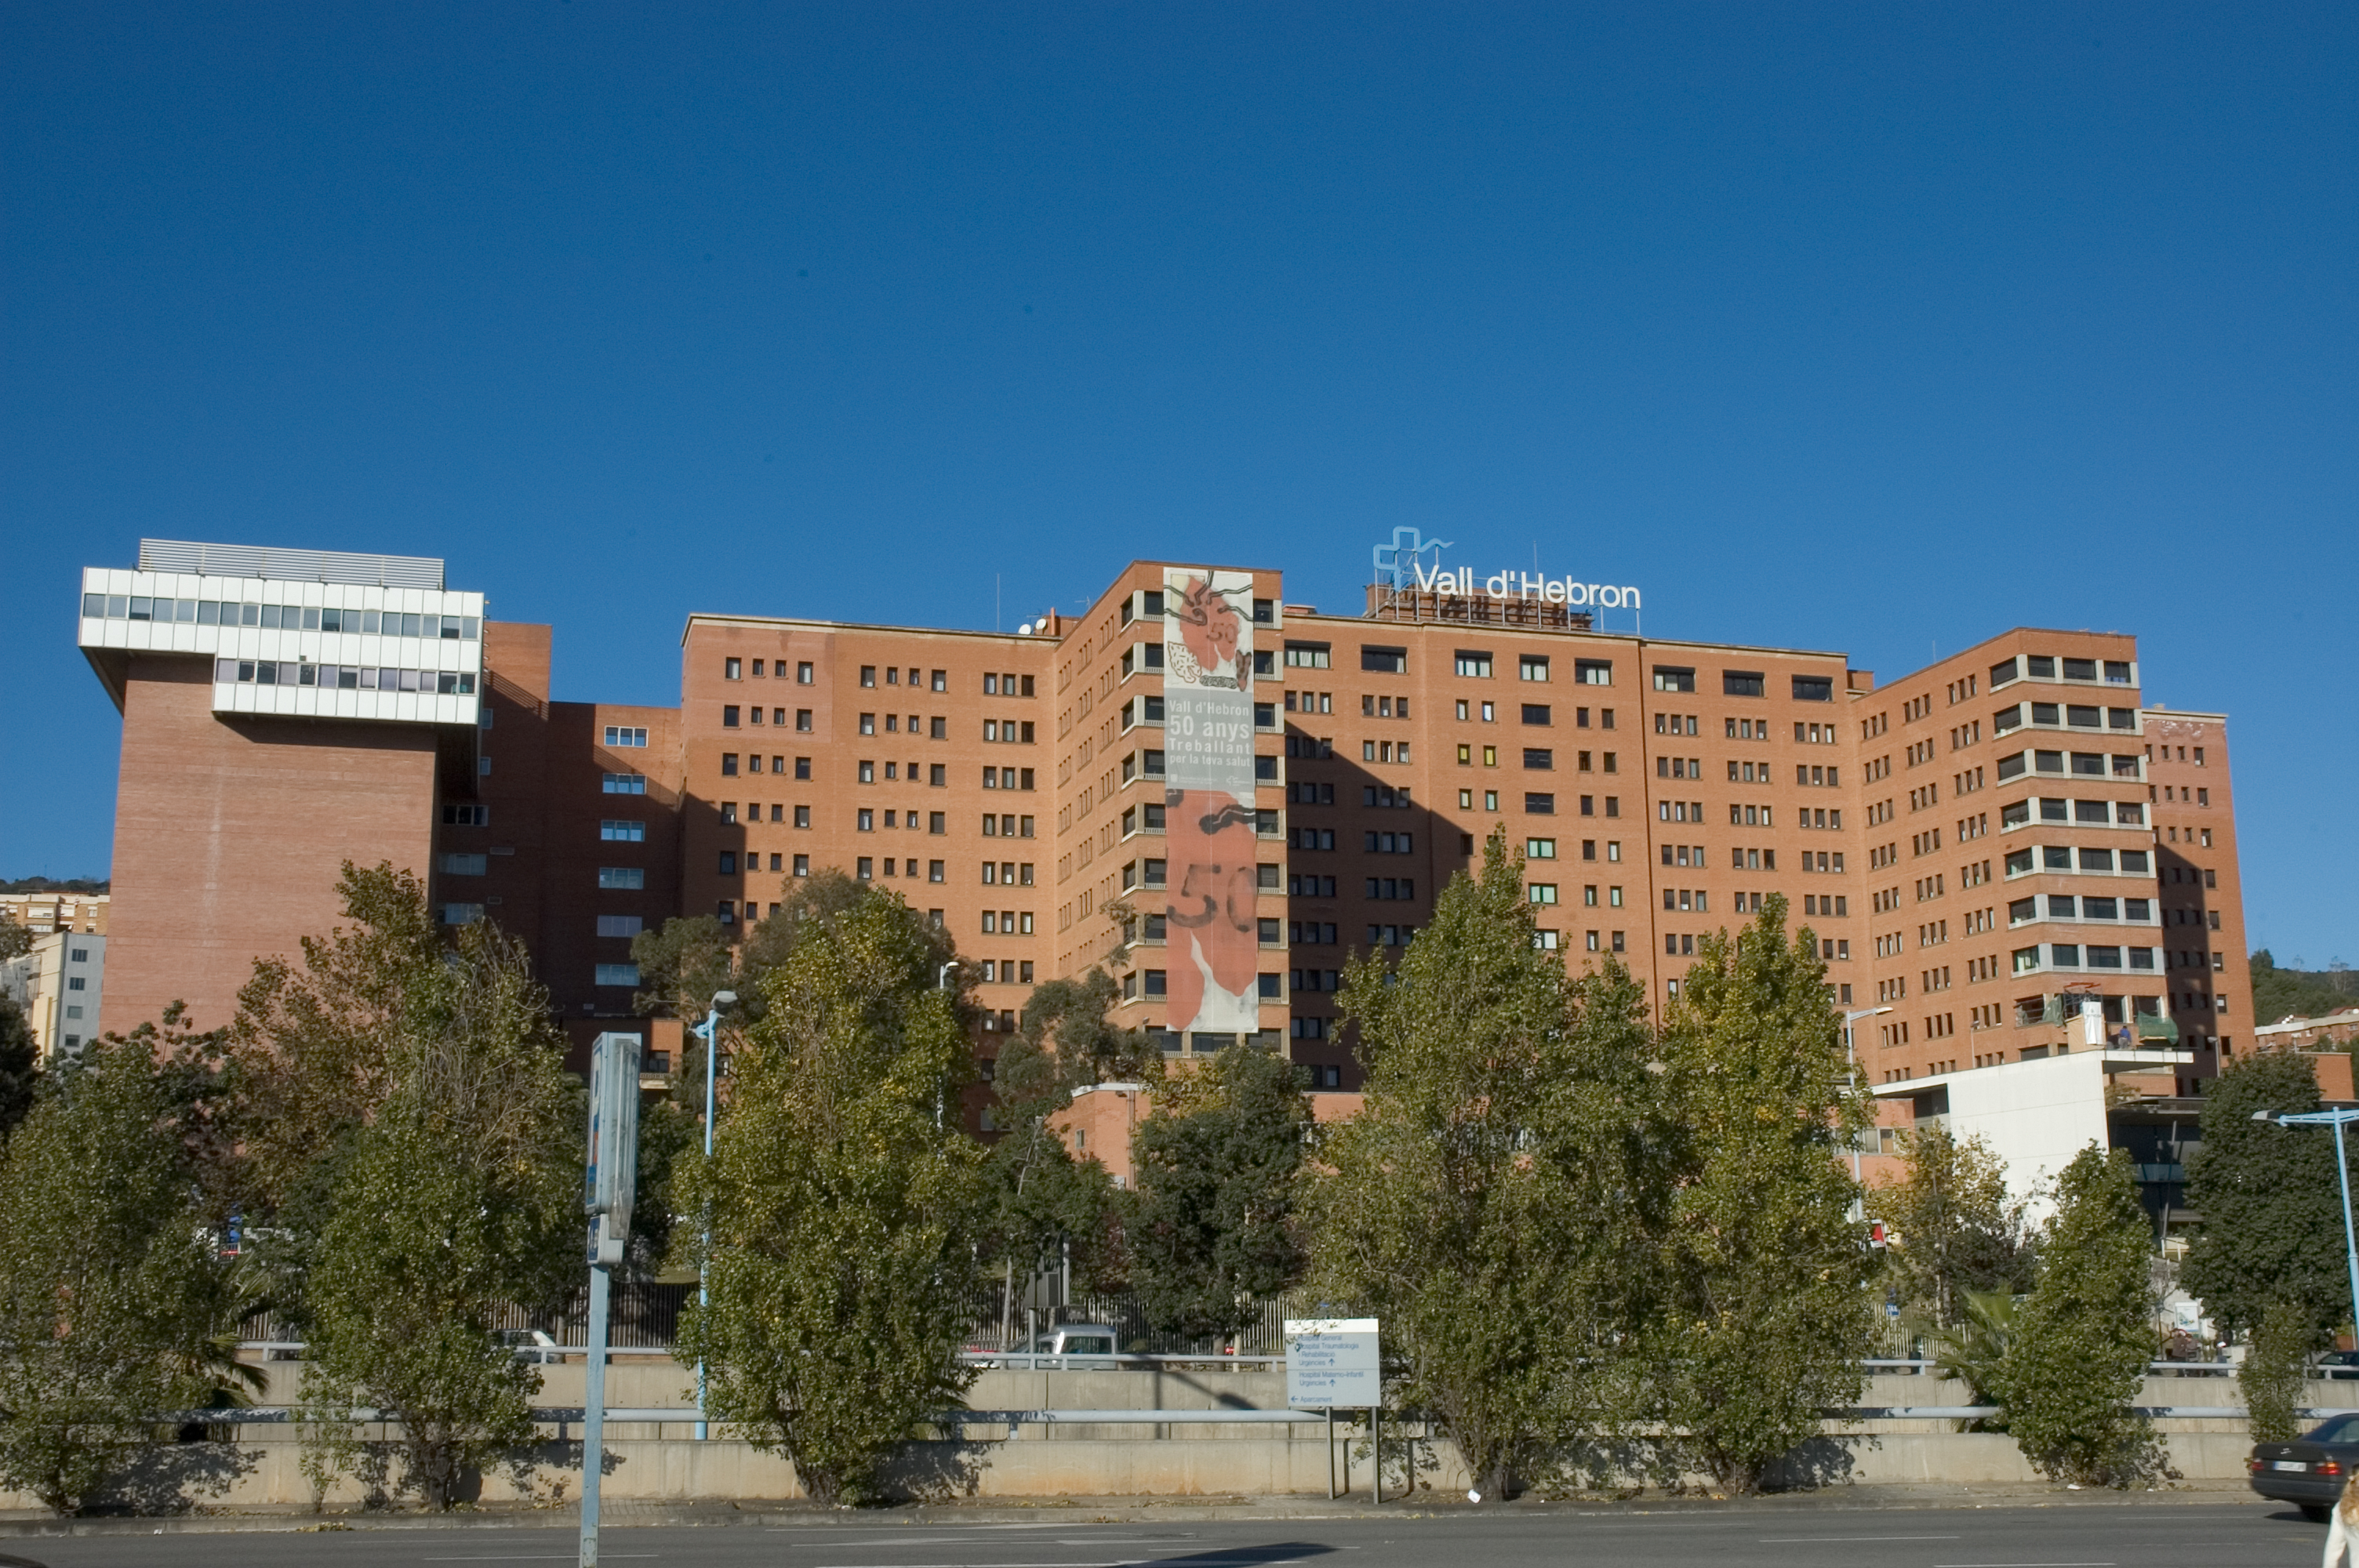 Hospital Vall d'Hebron in Barcelona, Spain.